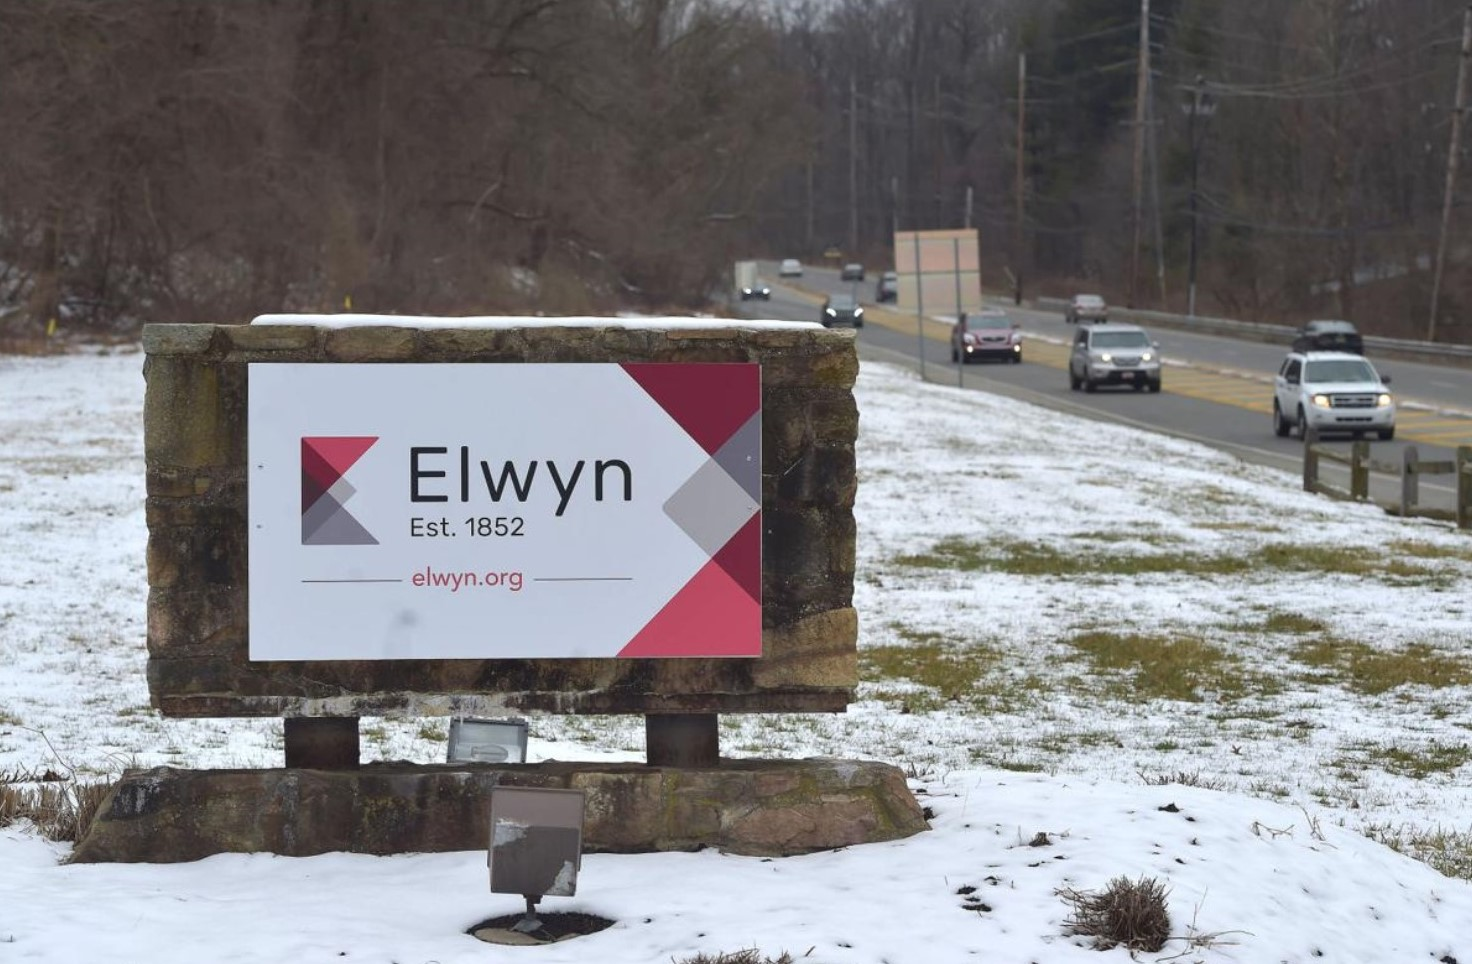 Elwyn Aims to Re-Envision and Revitalize Its Services in Middletown Township